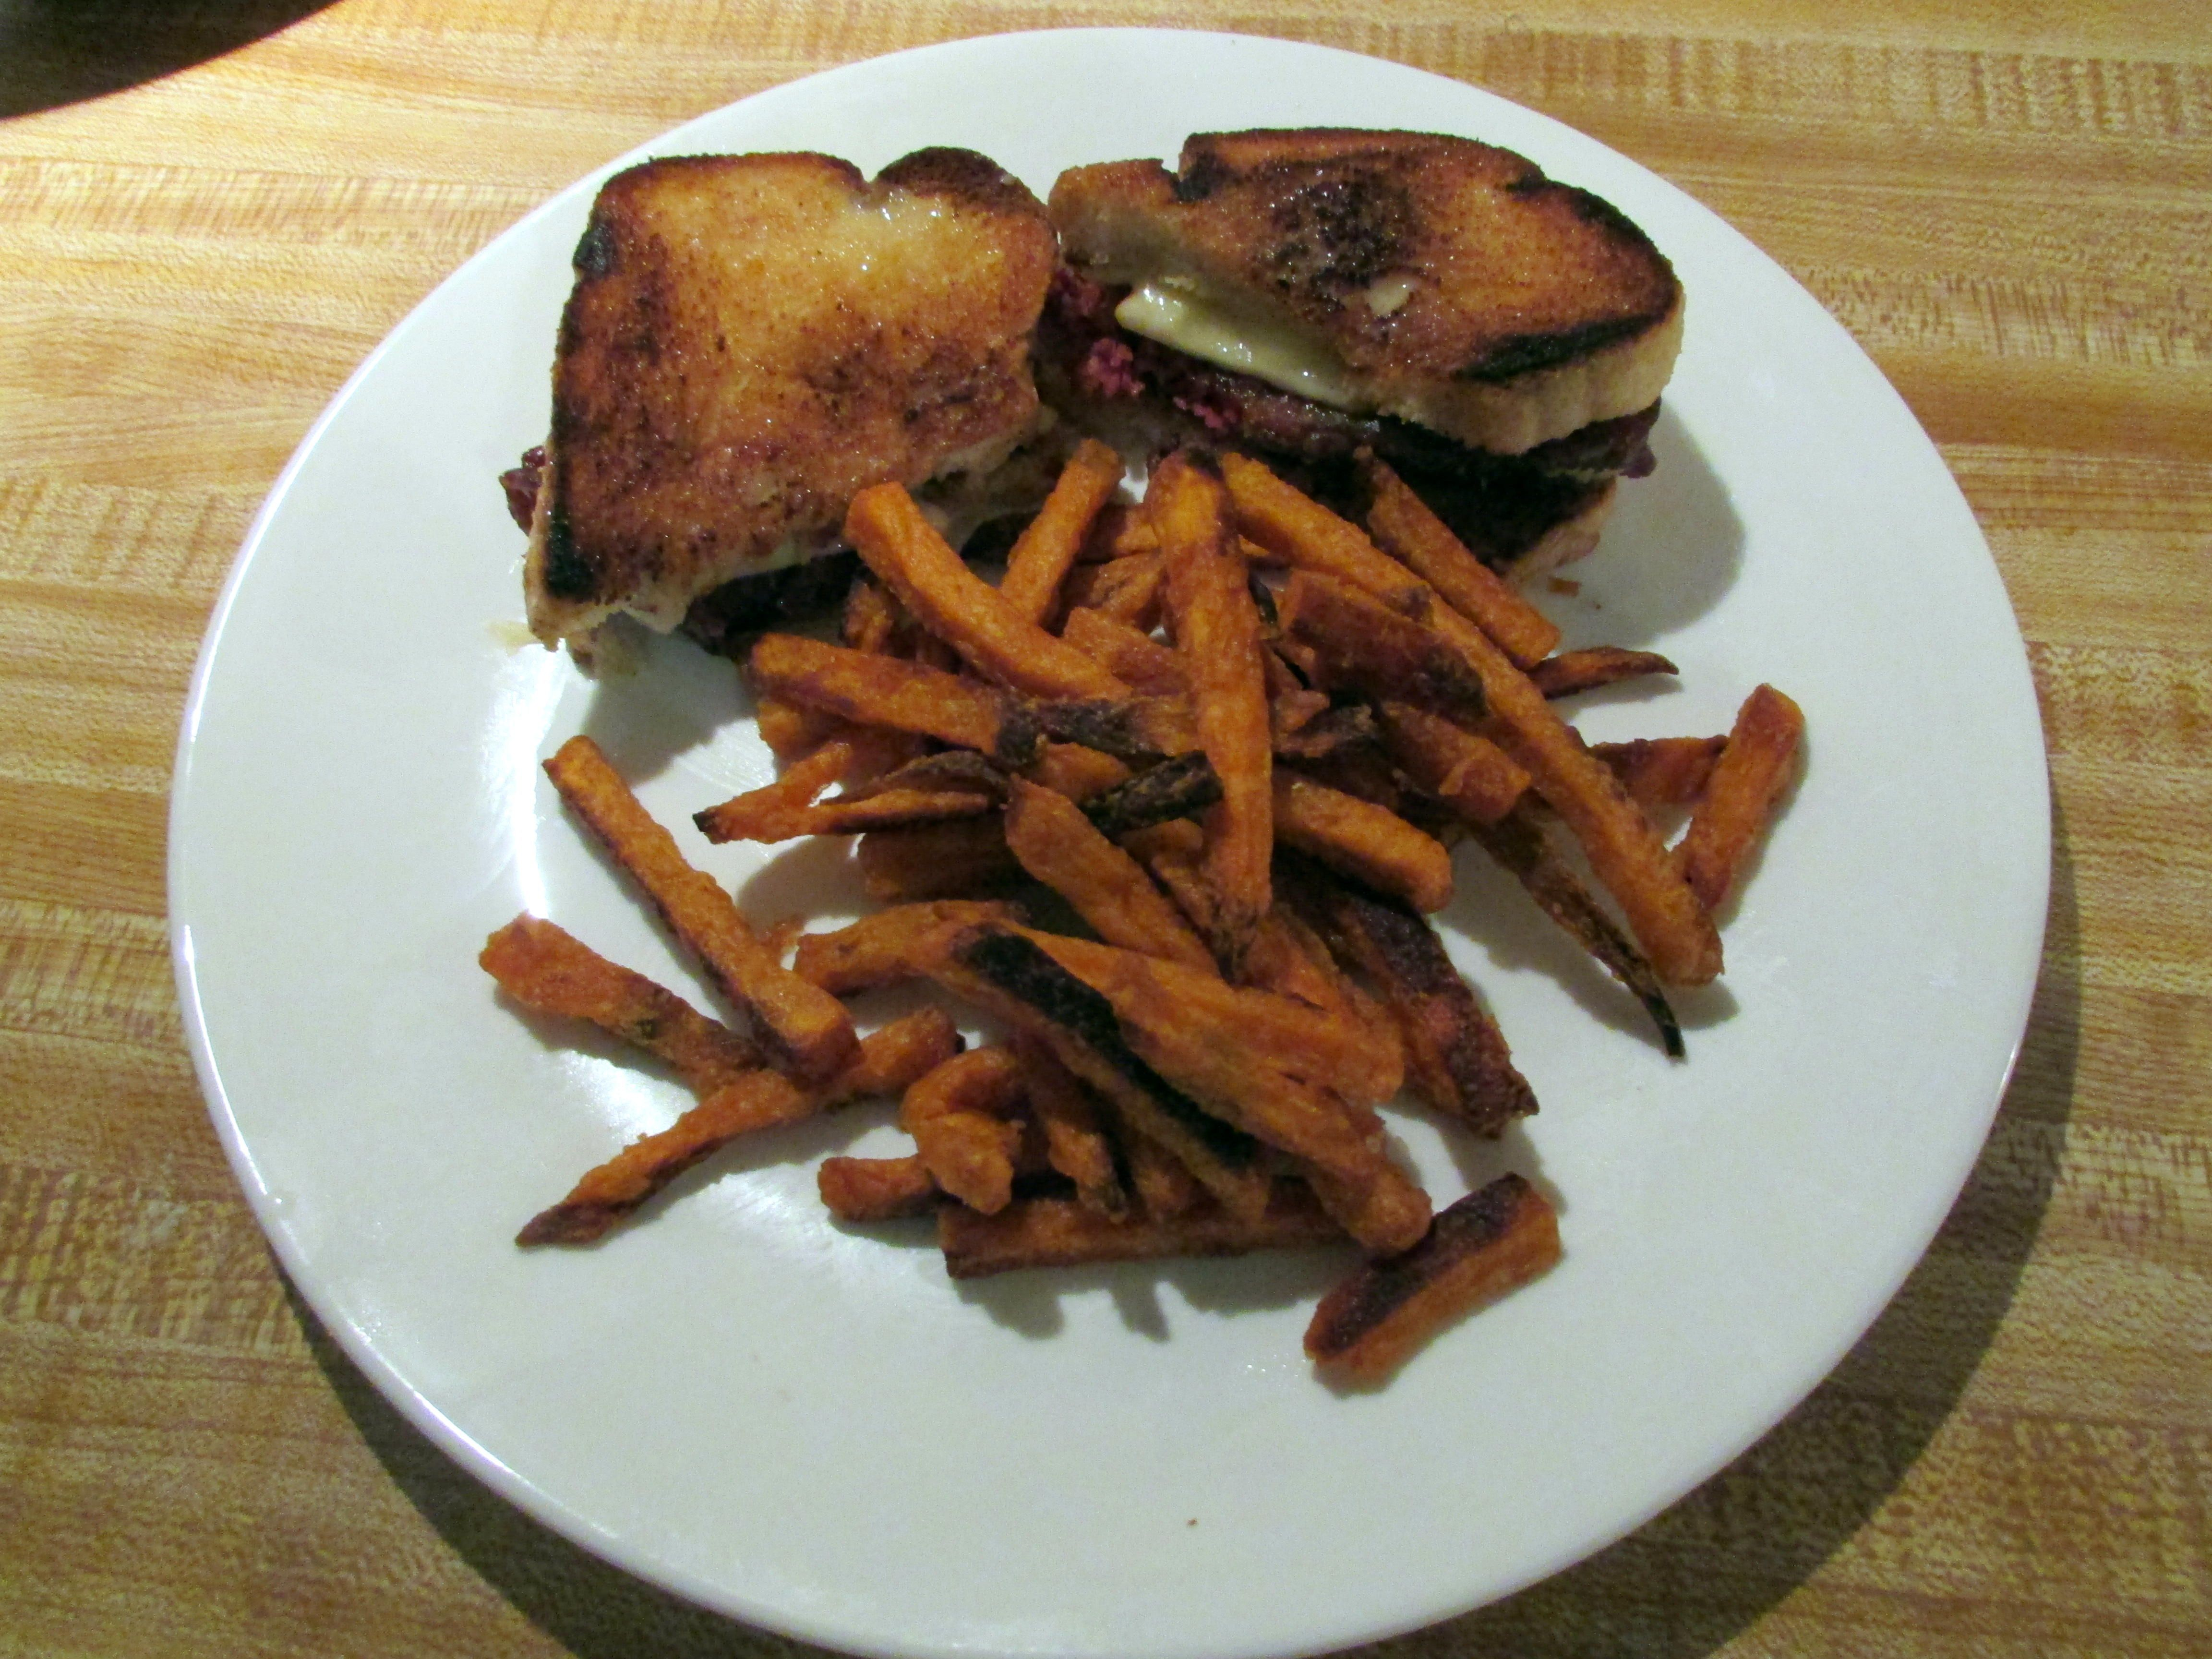 Beef Brisket and sweet potato fries.    Looking through the freezer, I found the beef brisket purchased for St. Patty's day.  Ooops !   Wanting to use it but not with the corned beef seasoning, did a Braised BB pot stew.  The left over beef, I breaded it and fried a nice crust on it and made into BBB sandwiches on Italian Bread toast with cheese.  Along with it some Sweet  potato fries.  Tasty !